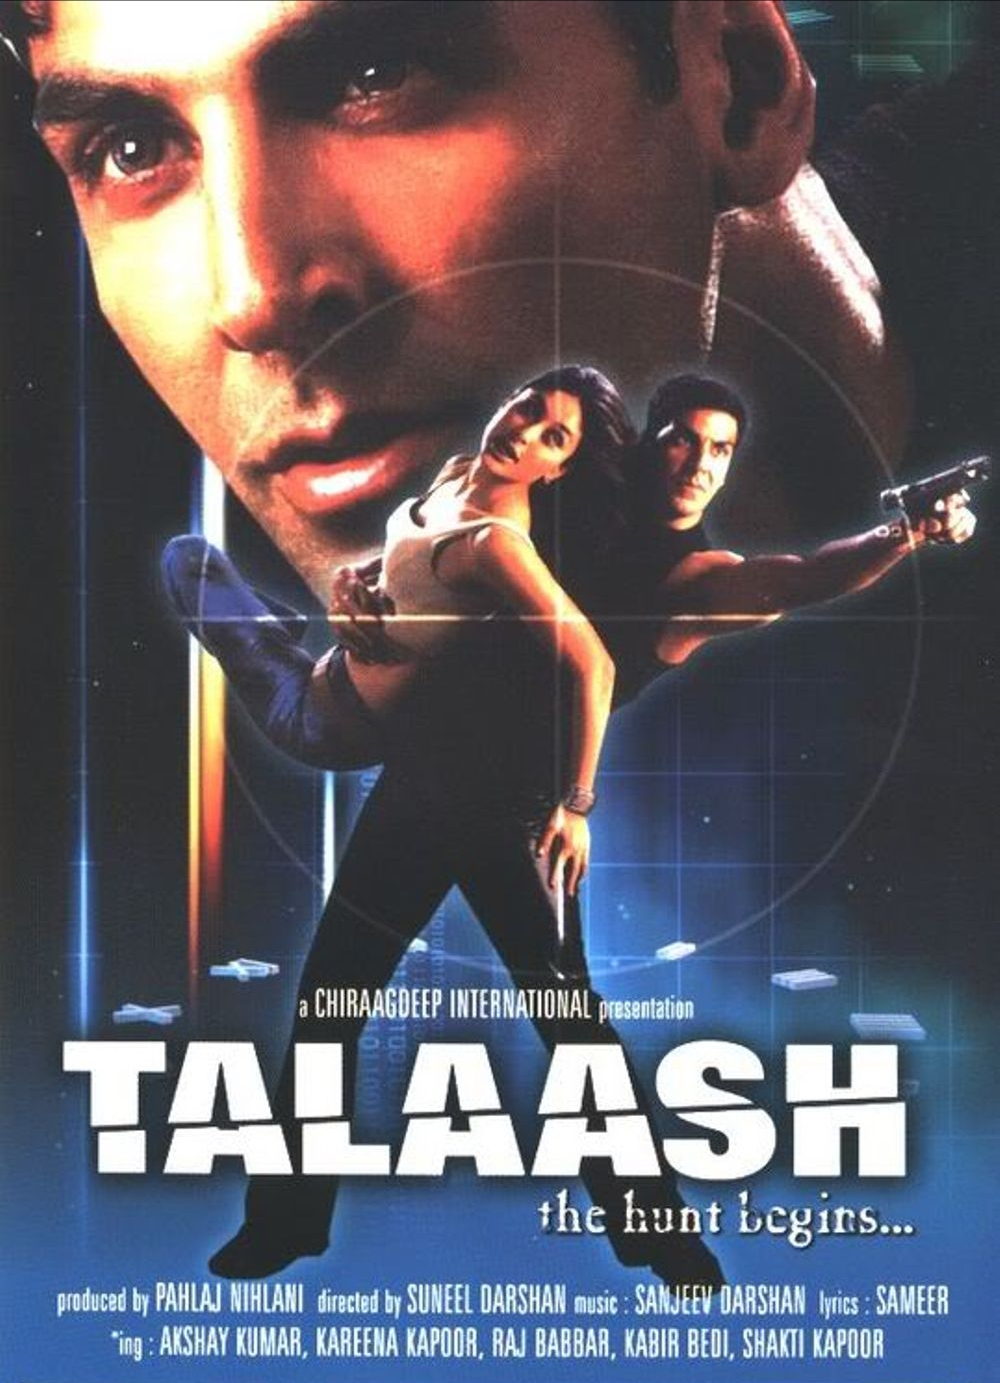 Talaash akshay kumar movie songs download bausumahordi blogcu. Com.